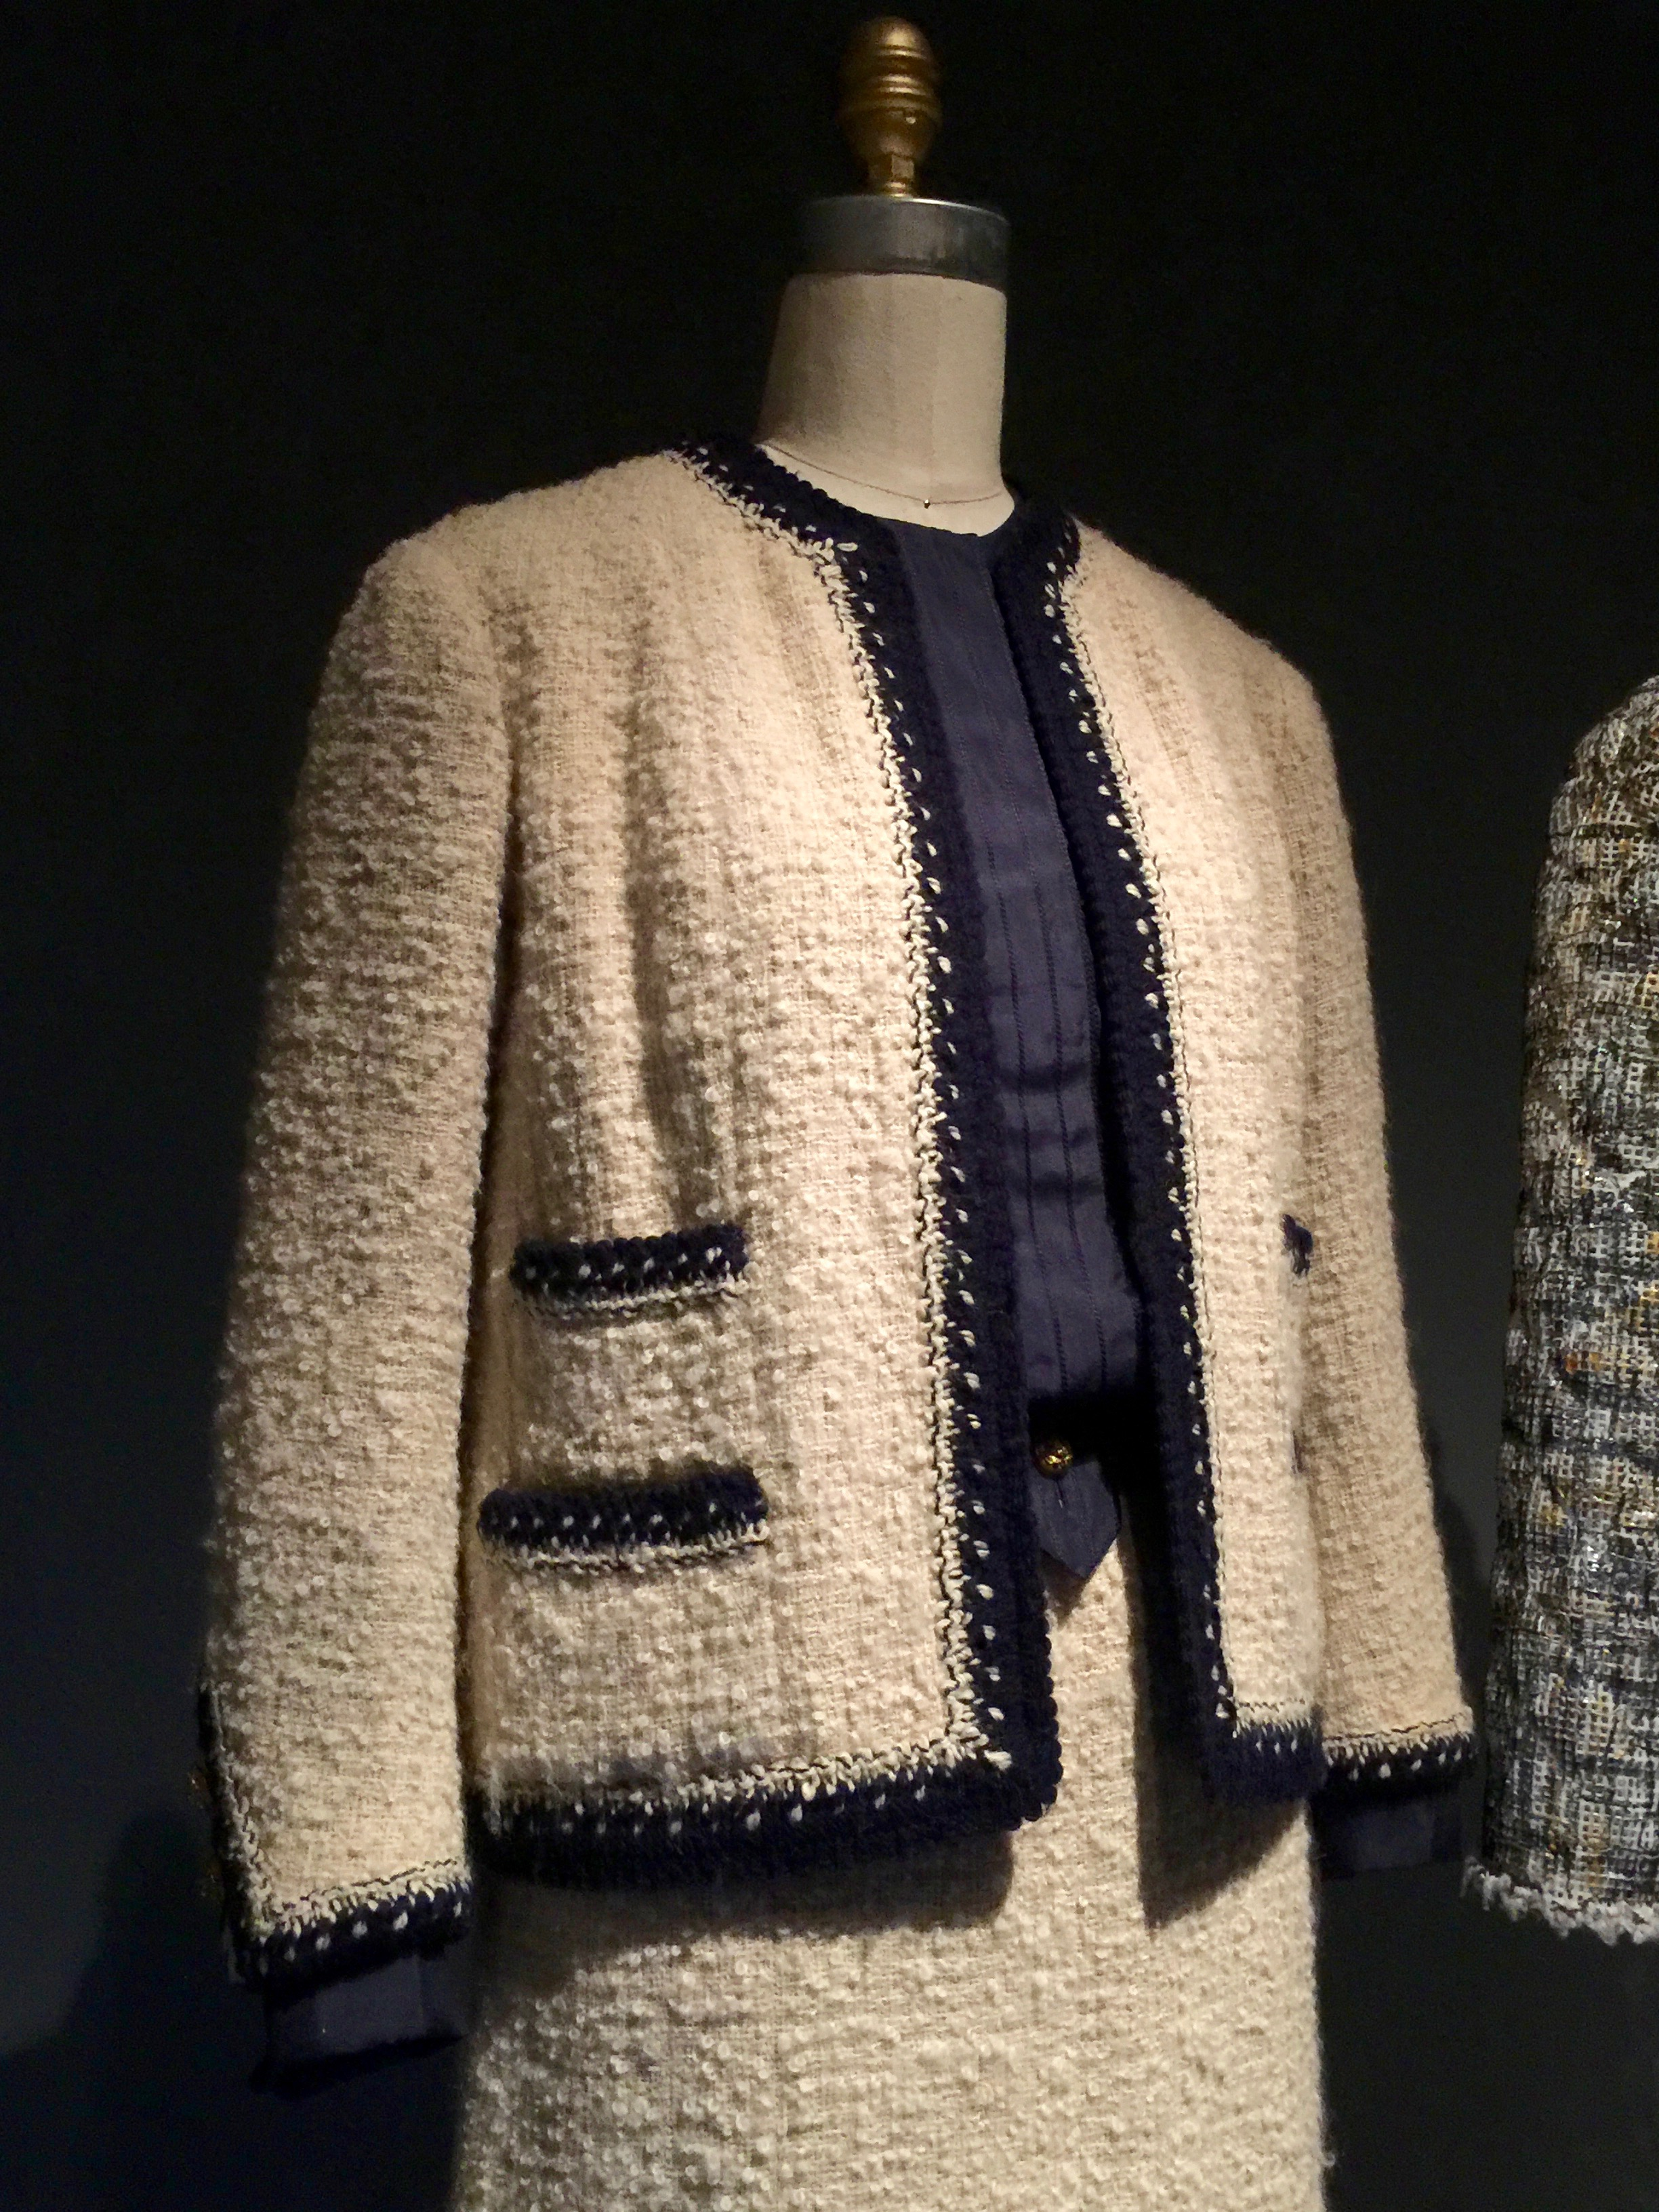 Machine-sewn ivory wool bouclé tweed, hand-applied navy and ivory wool knit trim hand-braided with interlocking chain stitch